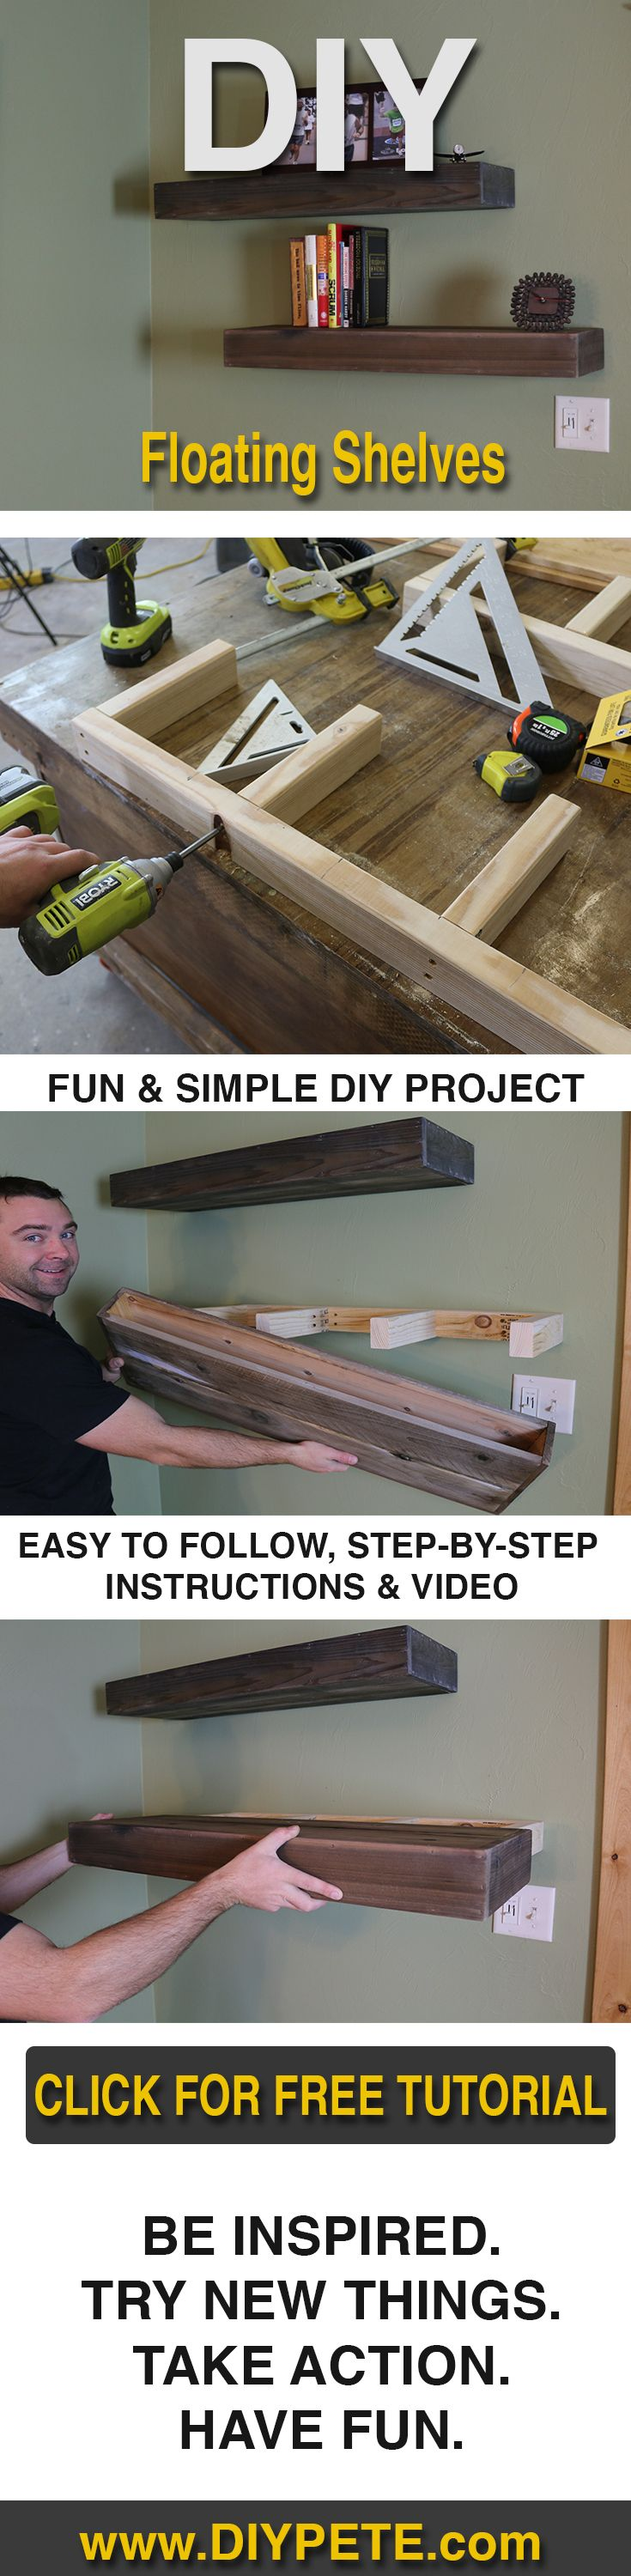 Learn how to make Wood Floating Shelves with DIY Pete! Simple, affordable project that looks great. Check out the video, post, and free plans!